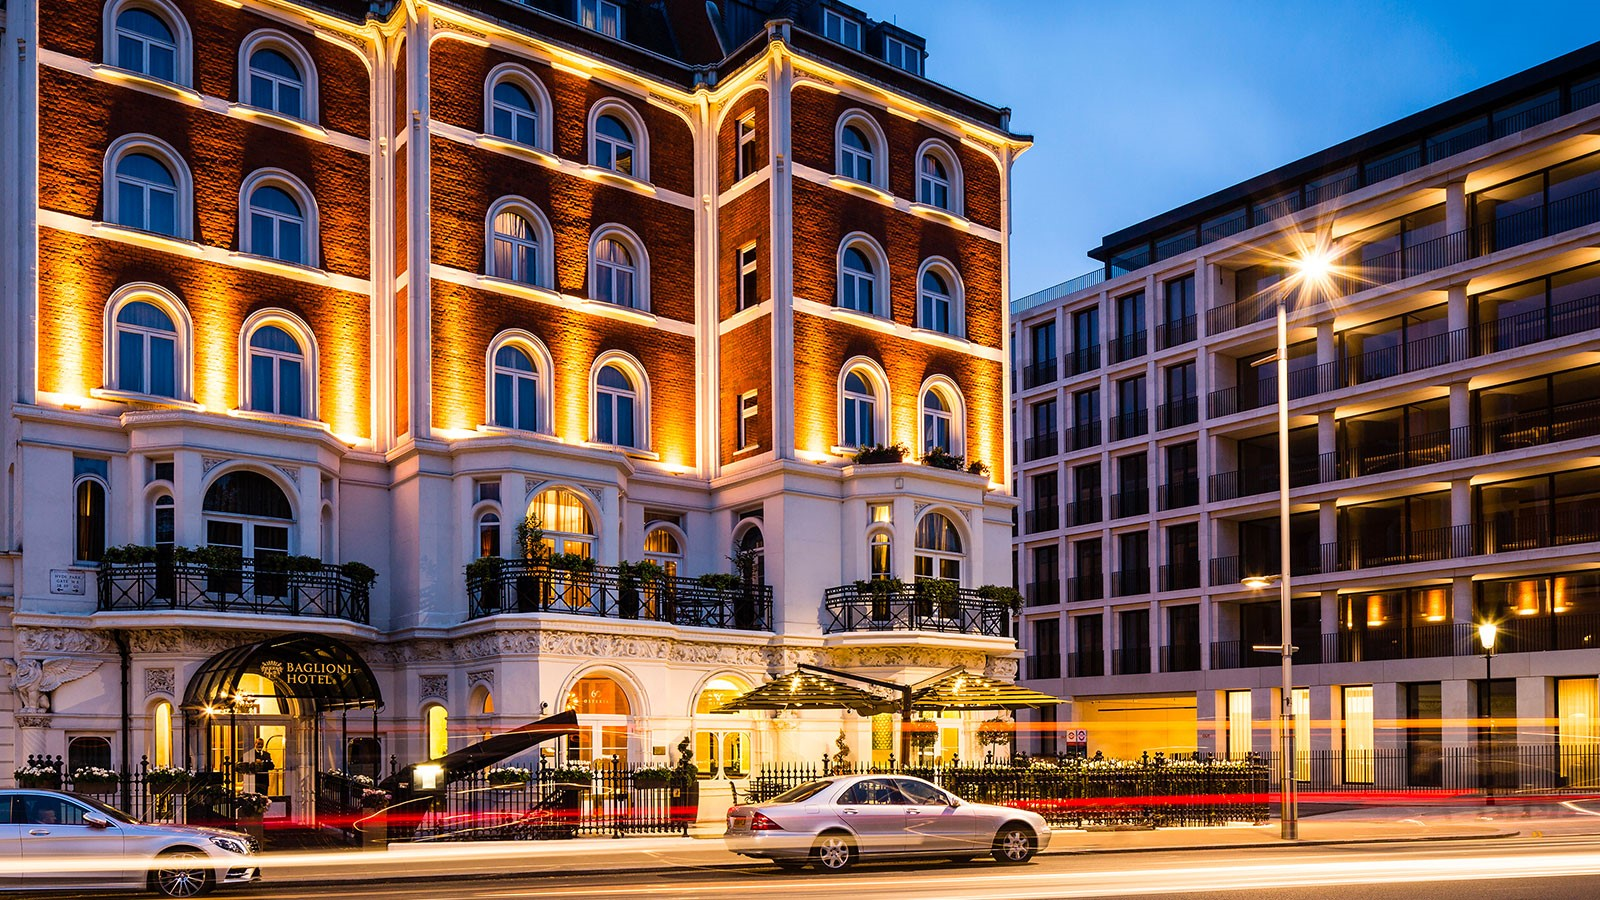 Staying In London? 5 Reasons To Book A Day Break Hotel